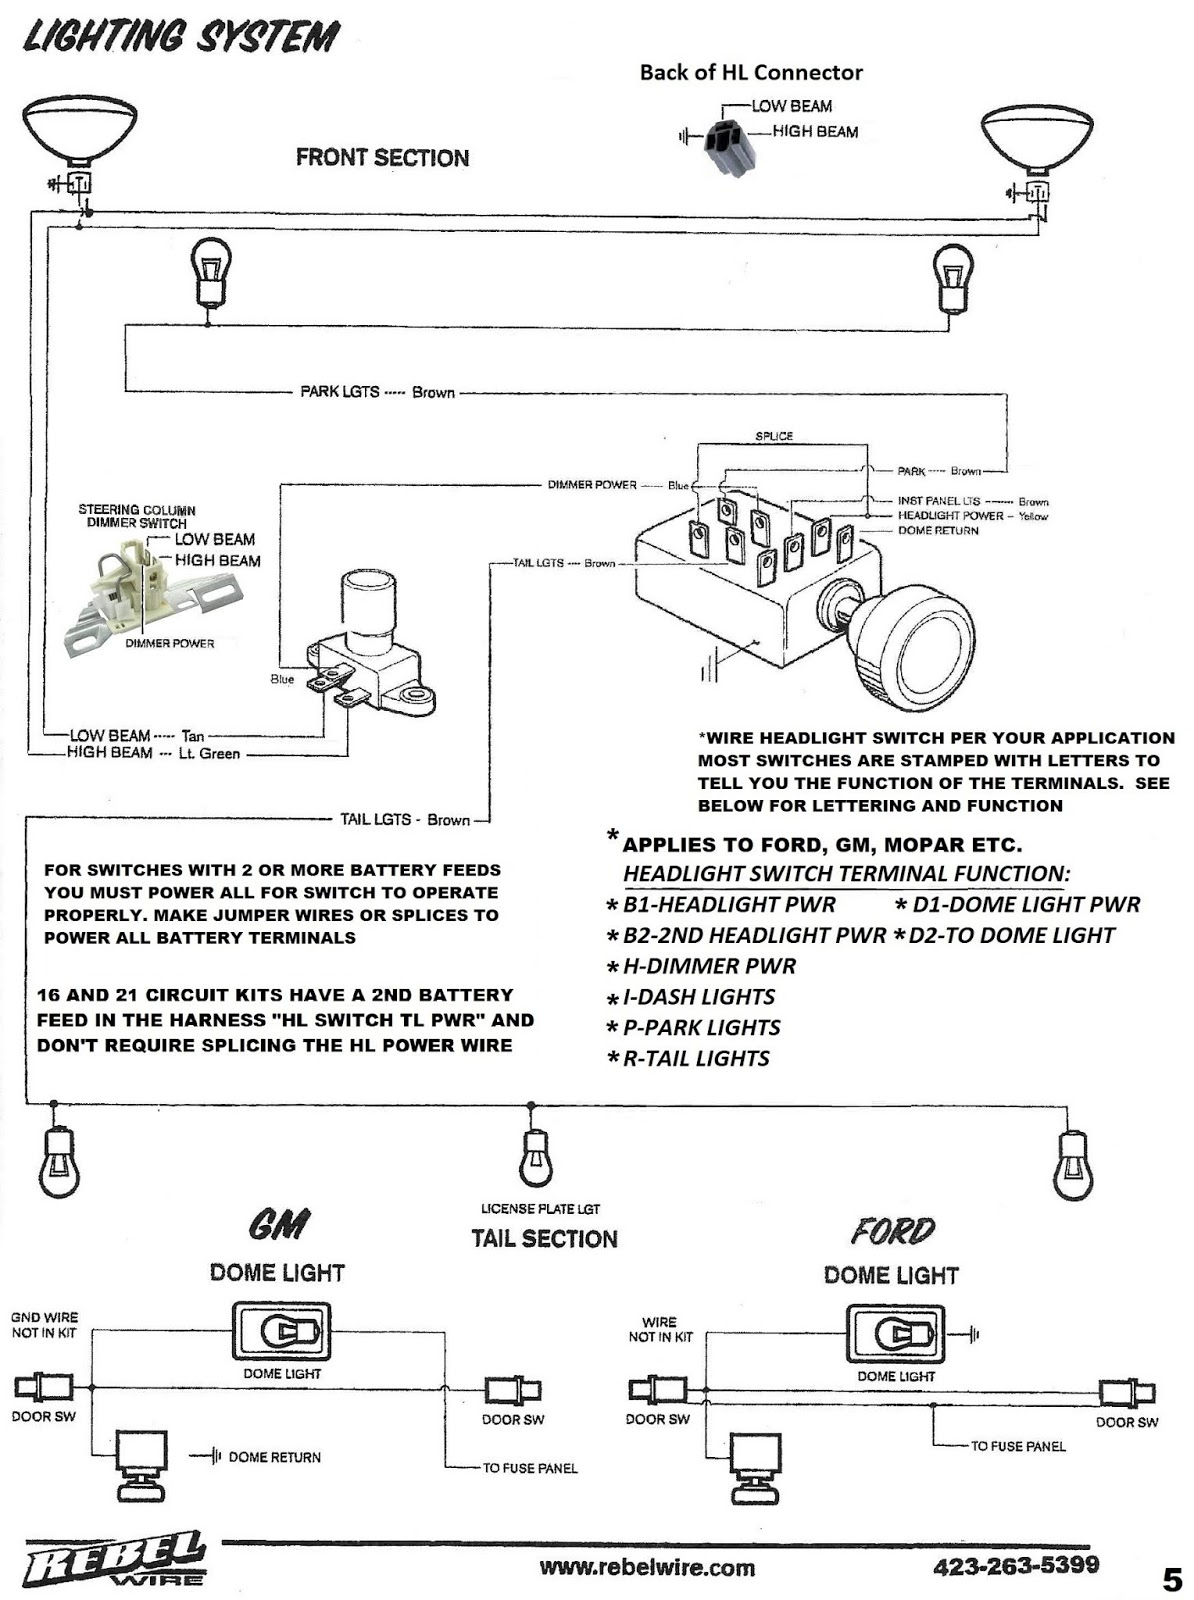 small resolution of vp instrument cluster help asapl3vndashwiringjpg wiring diagramdome light wiring diagram together with chevy dome light wiring